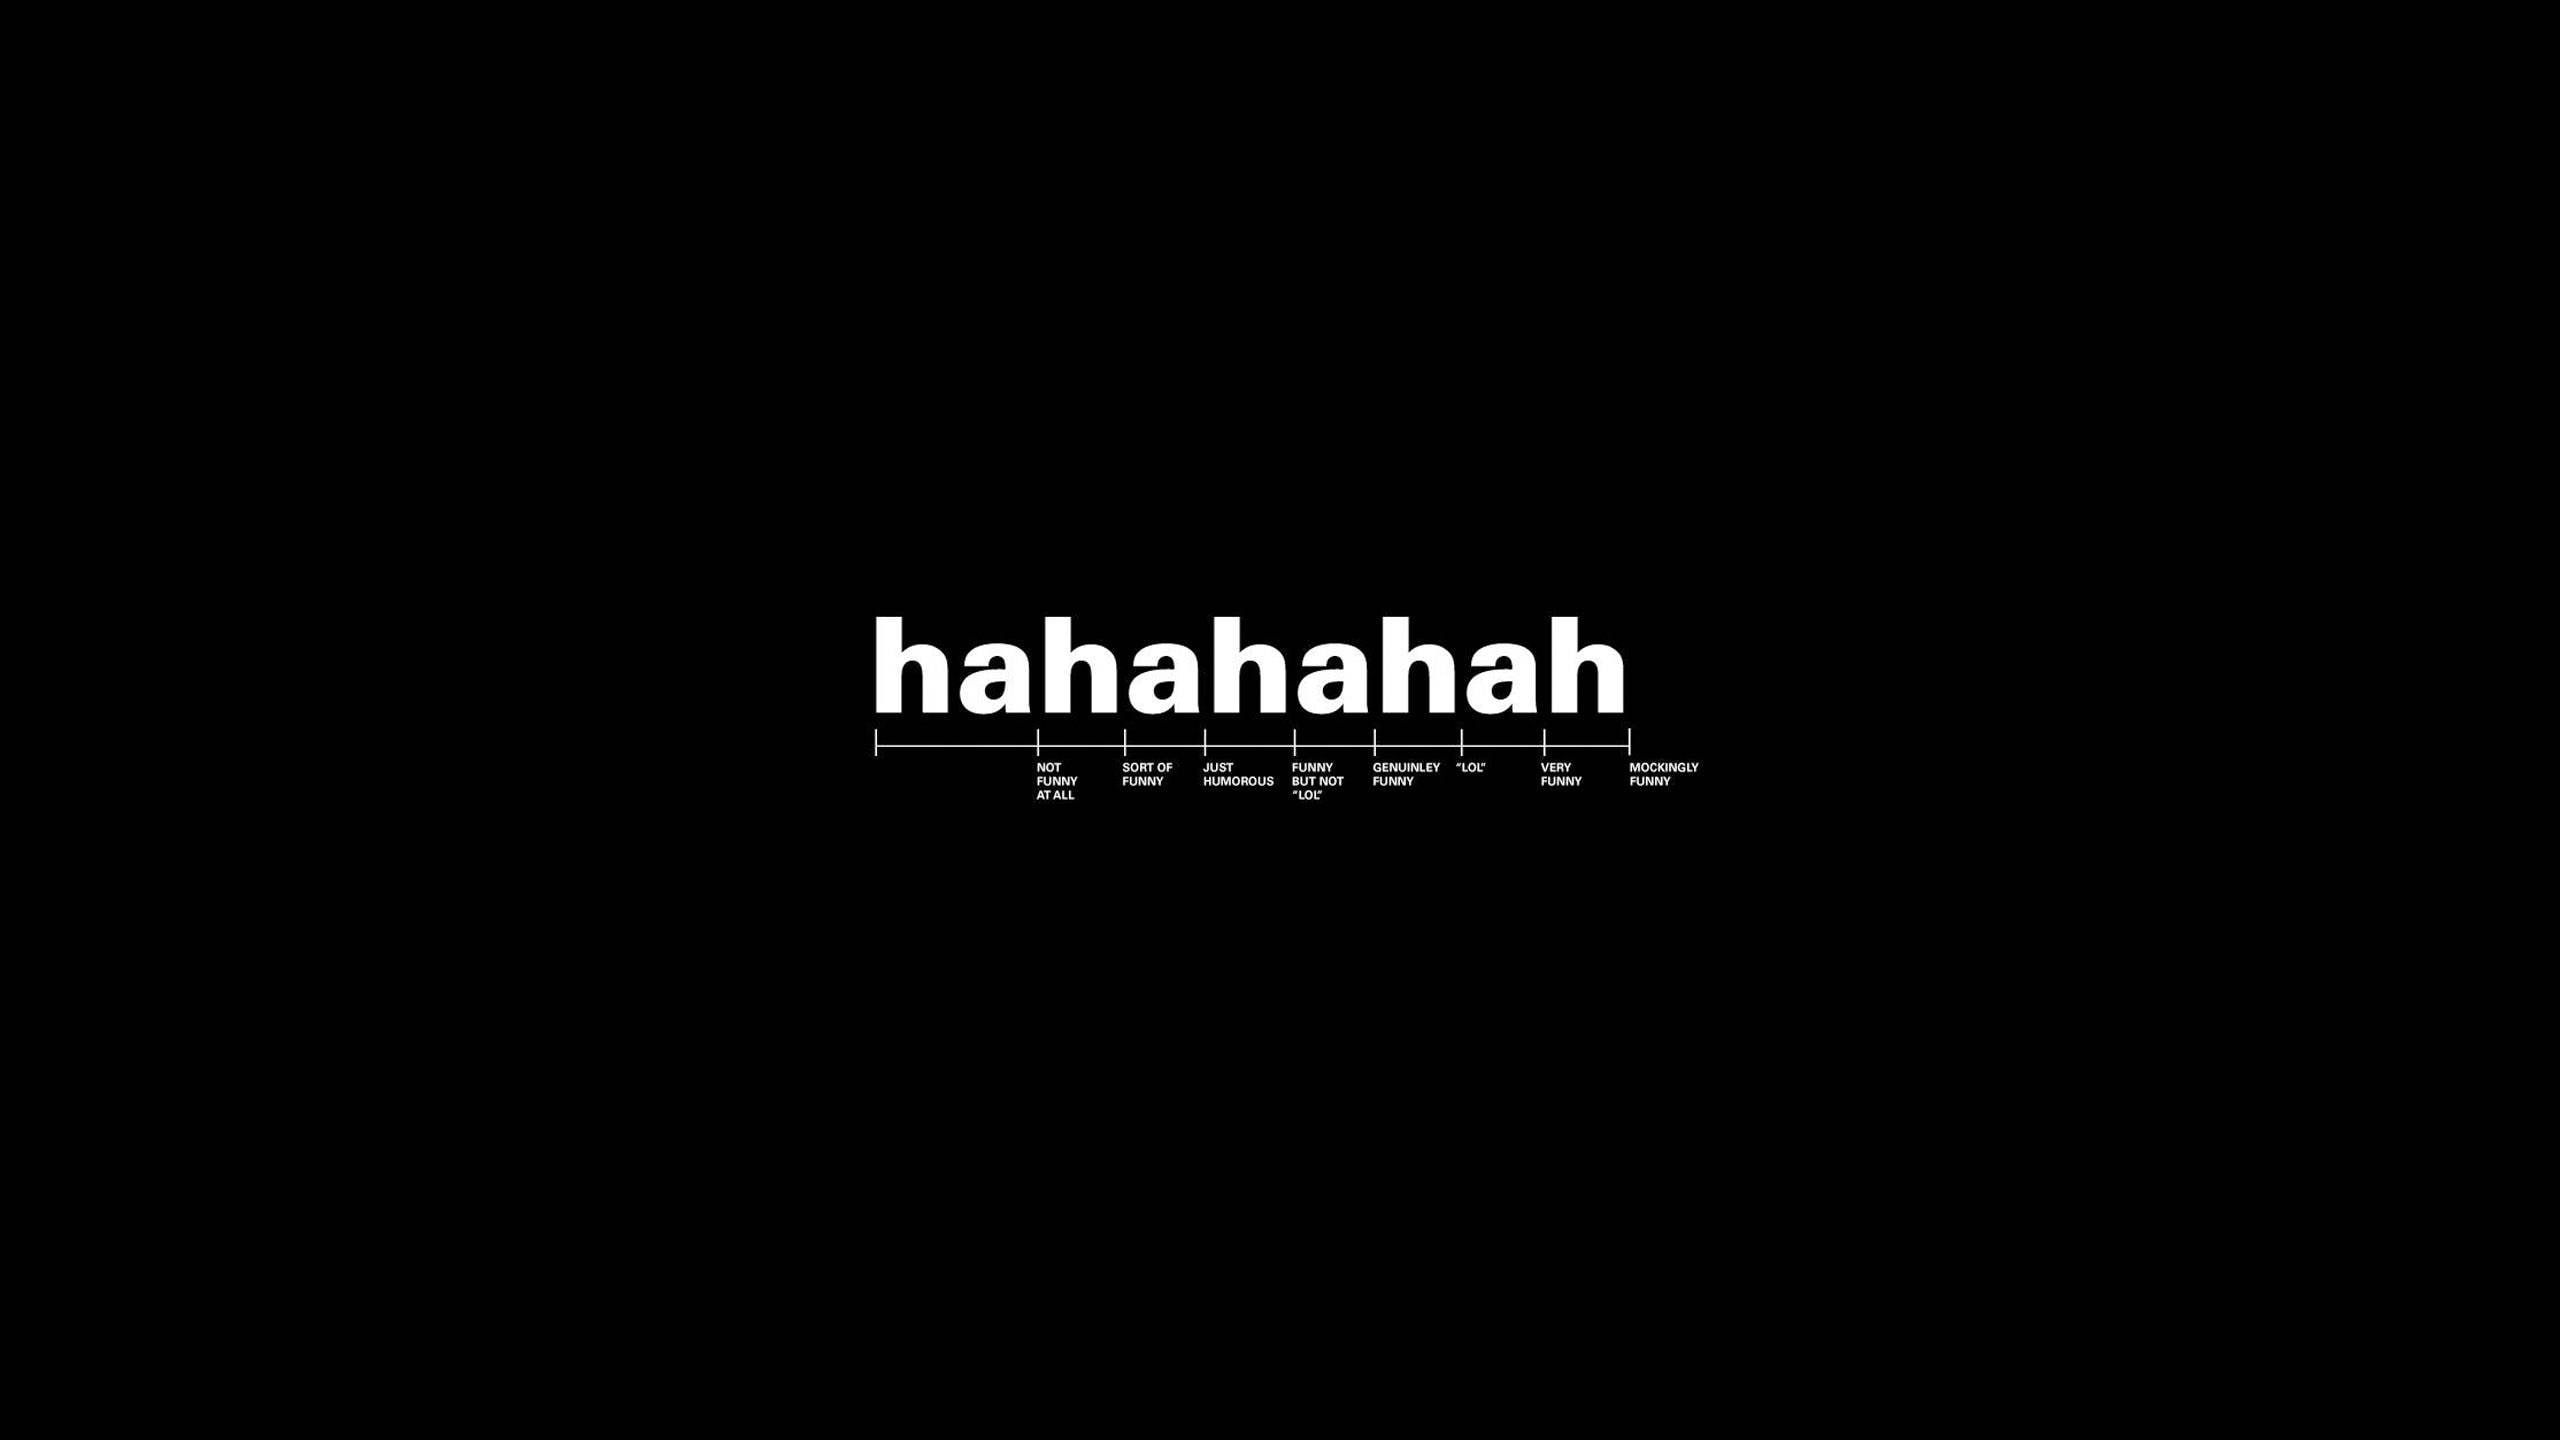 Black Background With Haha Text Overlay Humor Minimalism Simple Background 2k Wallpaper Hdwallpaper Desk Computer Wallpaper Funny Wallpapers Hd Wallpaper